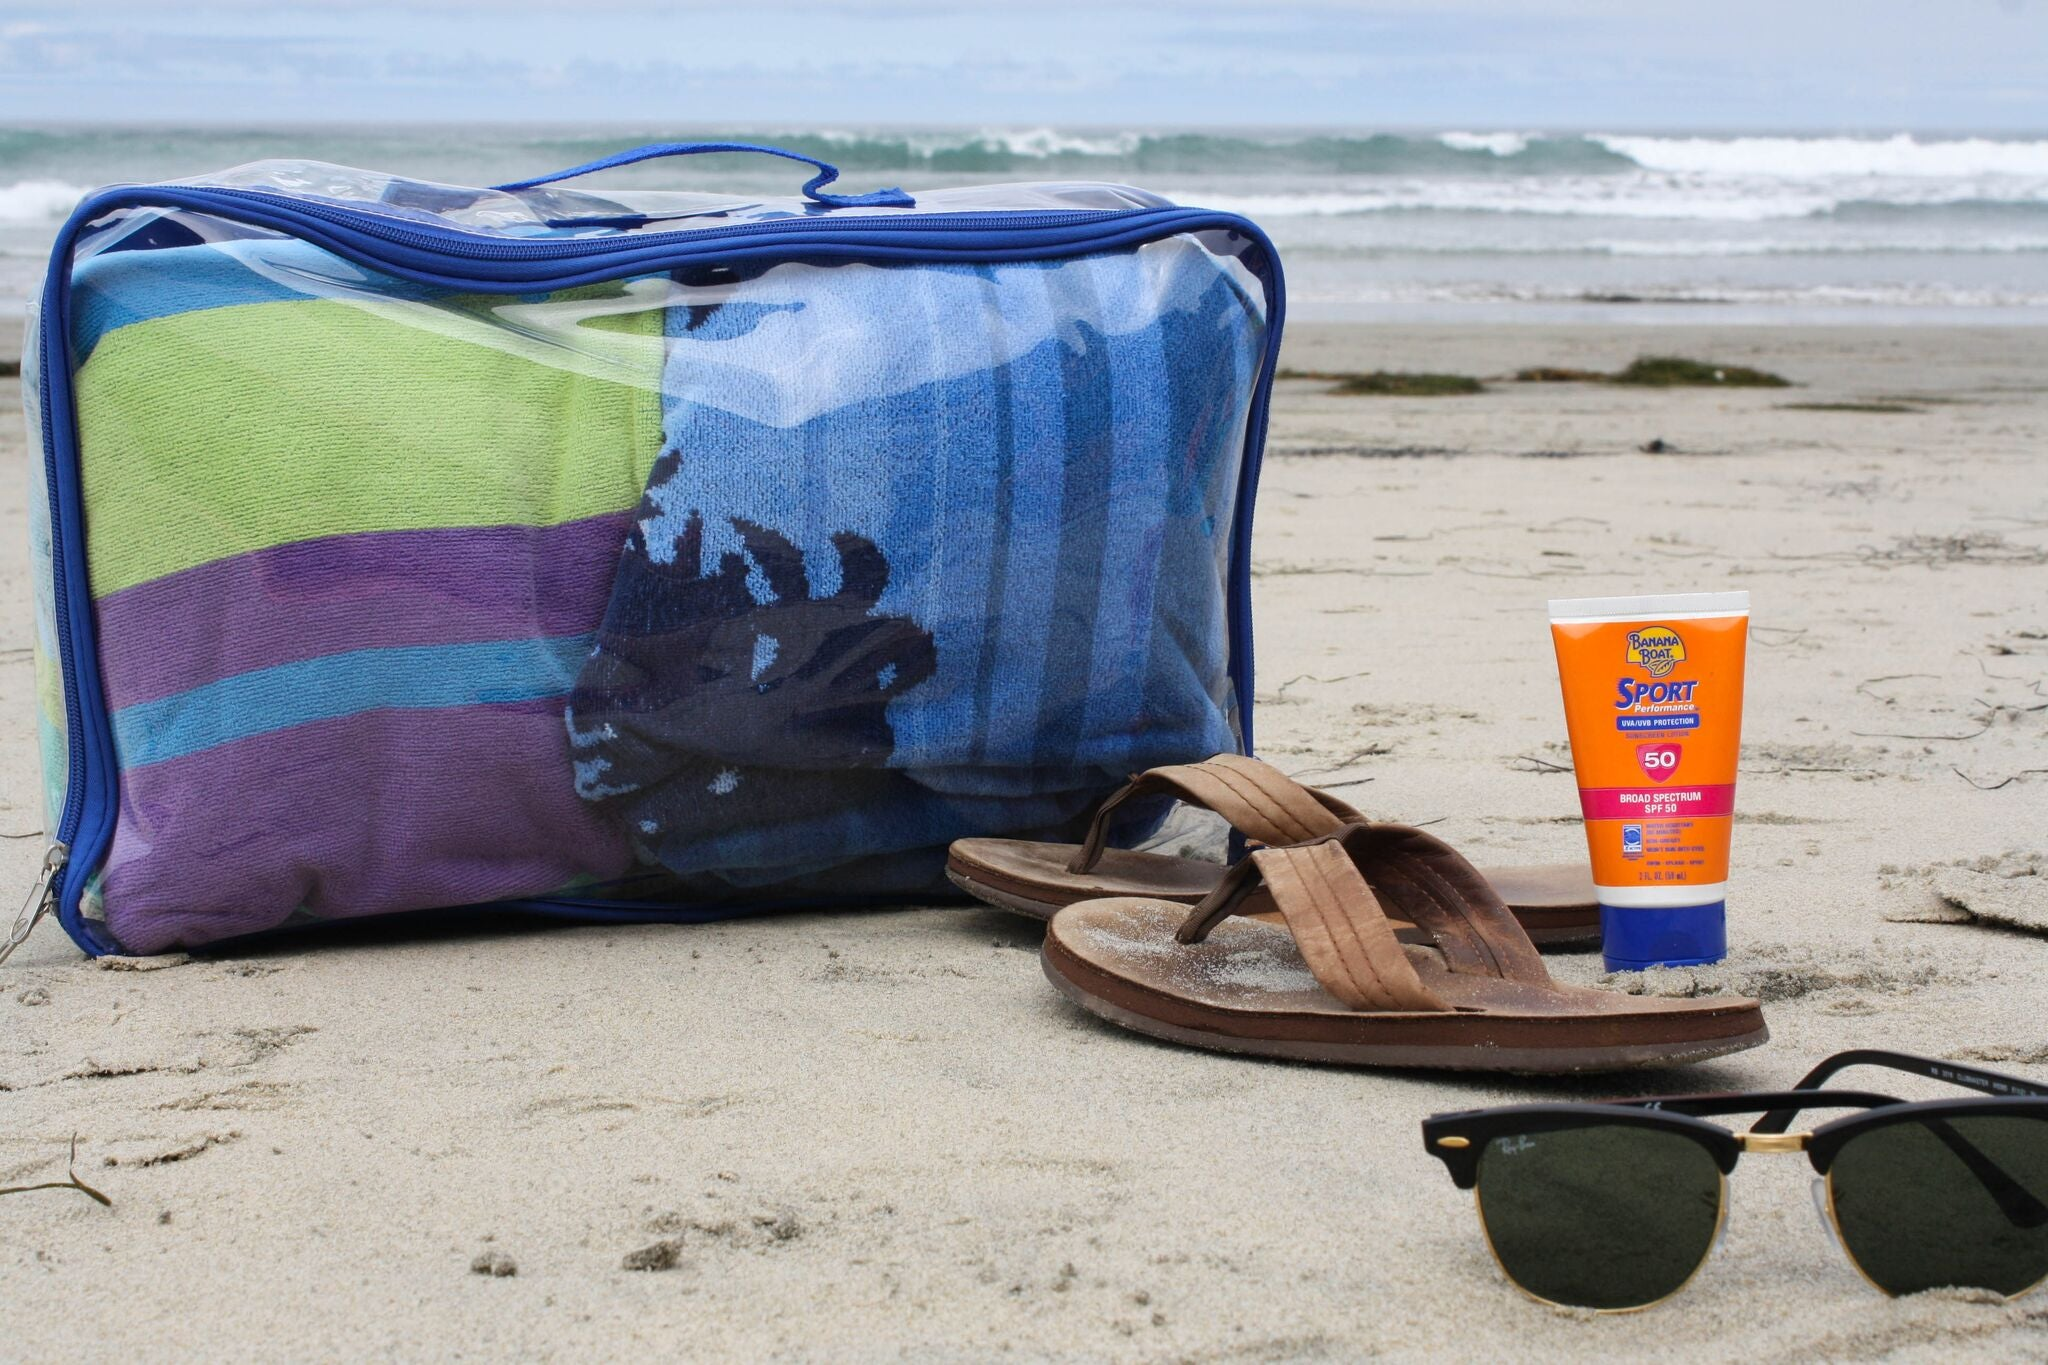 Blue large packing cube as a beach tote bag